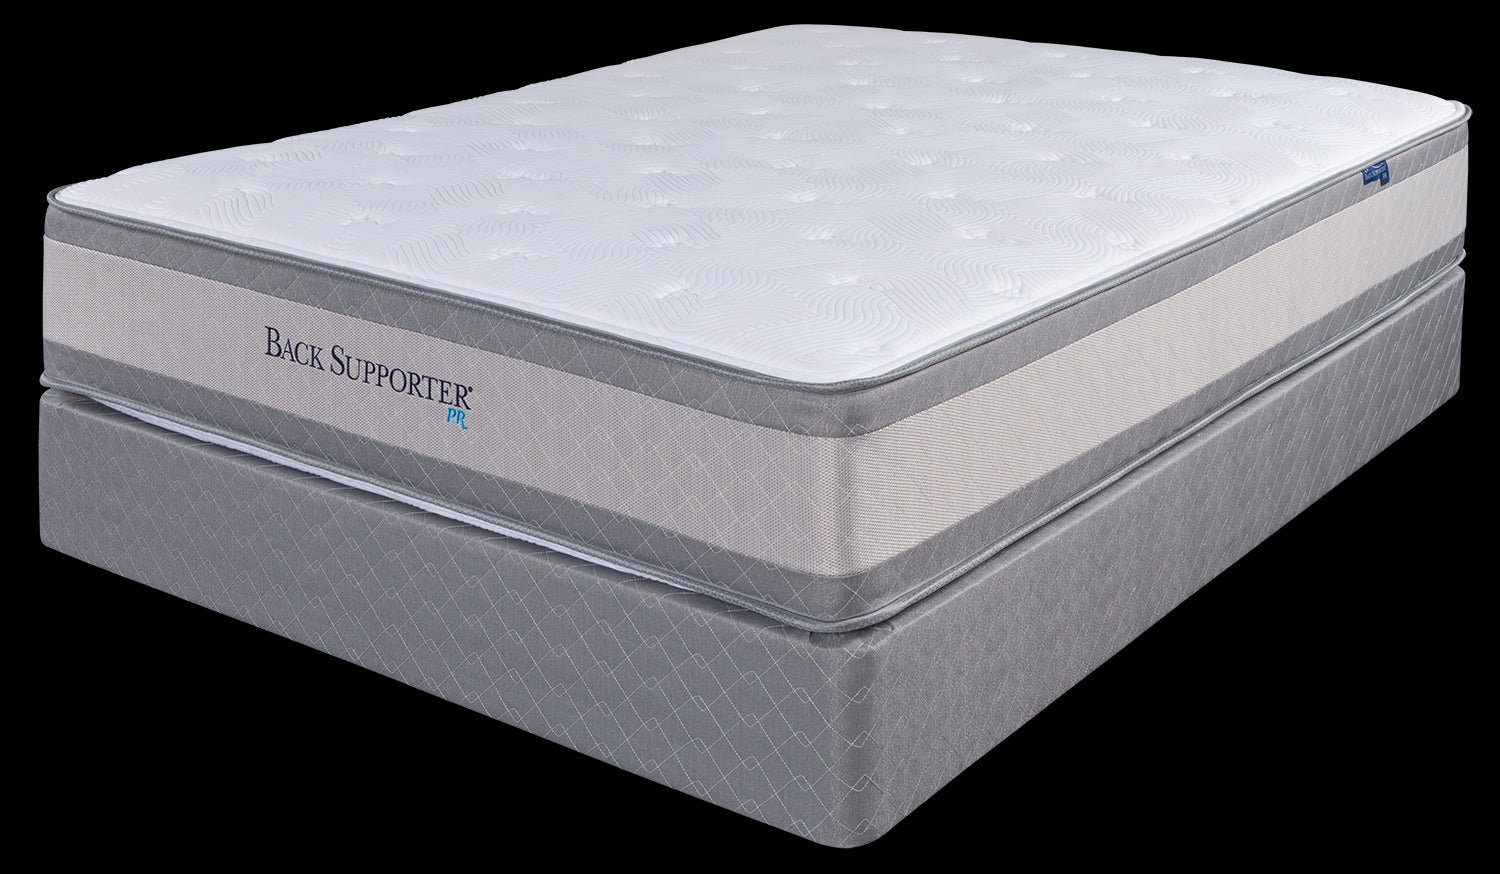 Spring Air King Perfect Rest Back Support Mattress Set